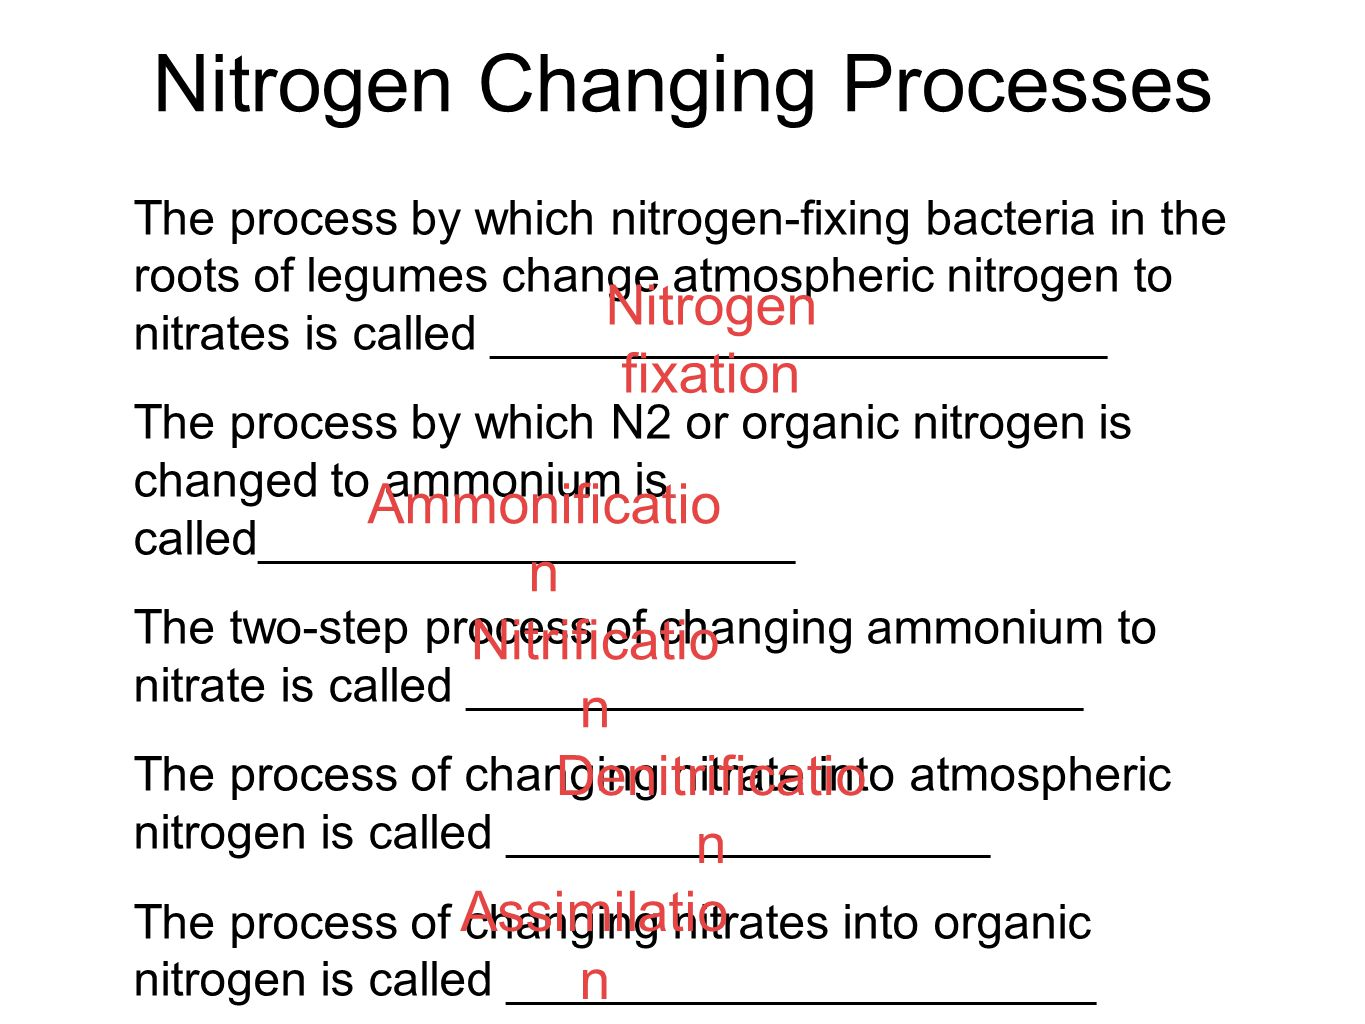 Nitrogen Changing Processes